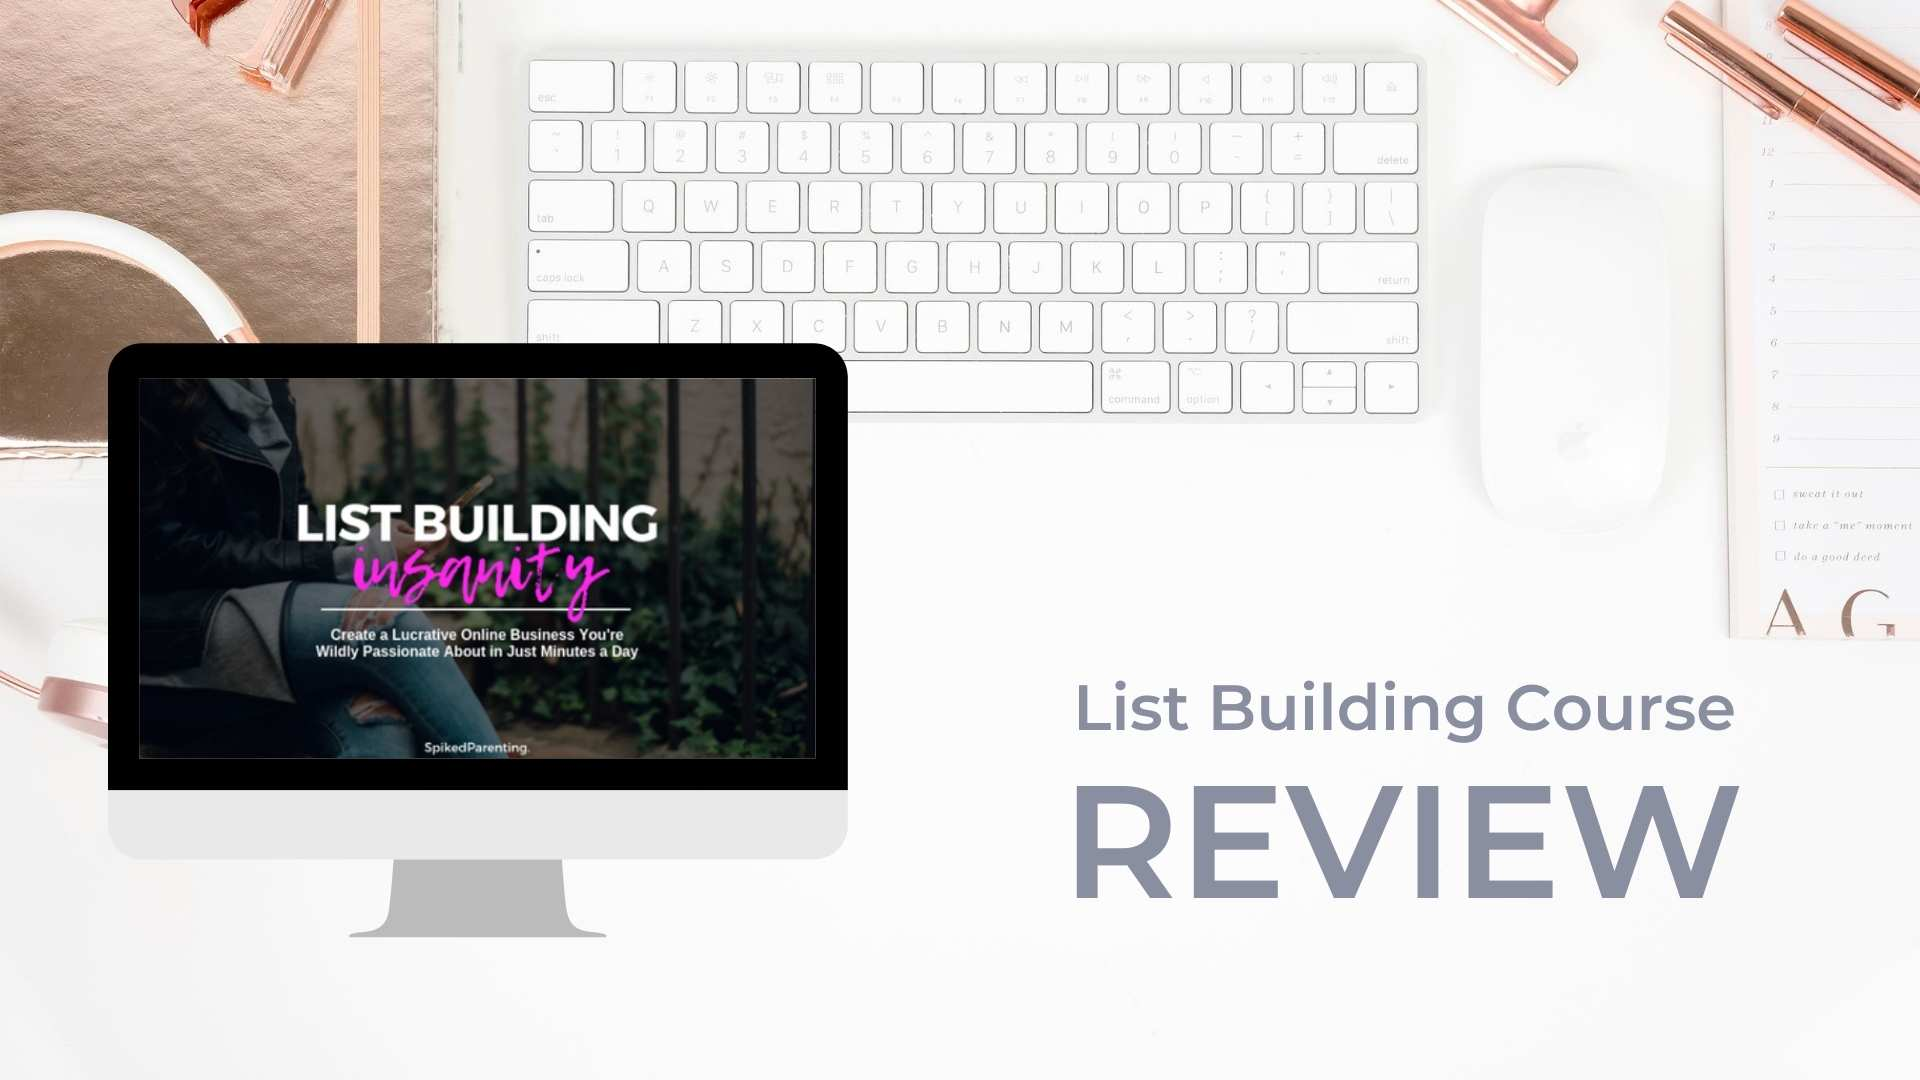 List Building Course List Building Insanity by Spiked Parenting